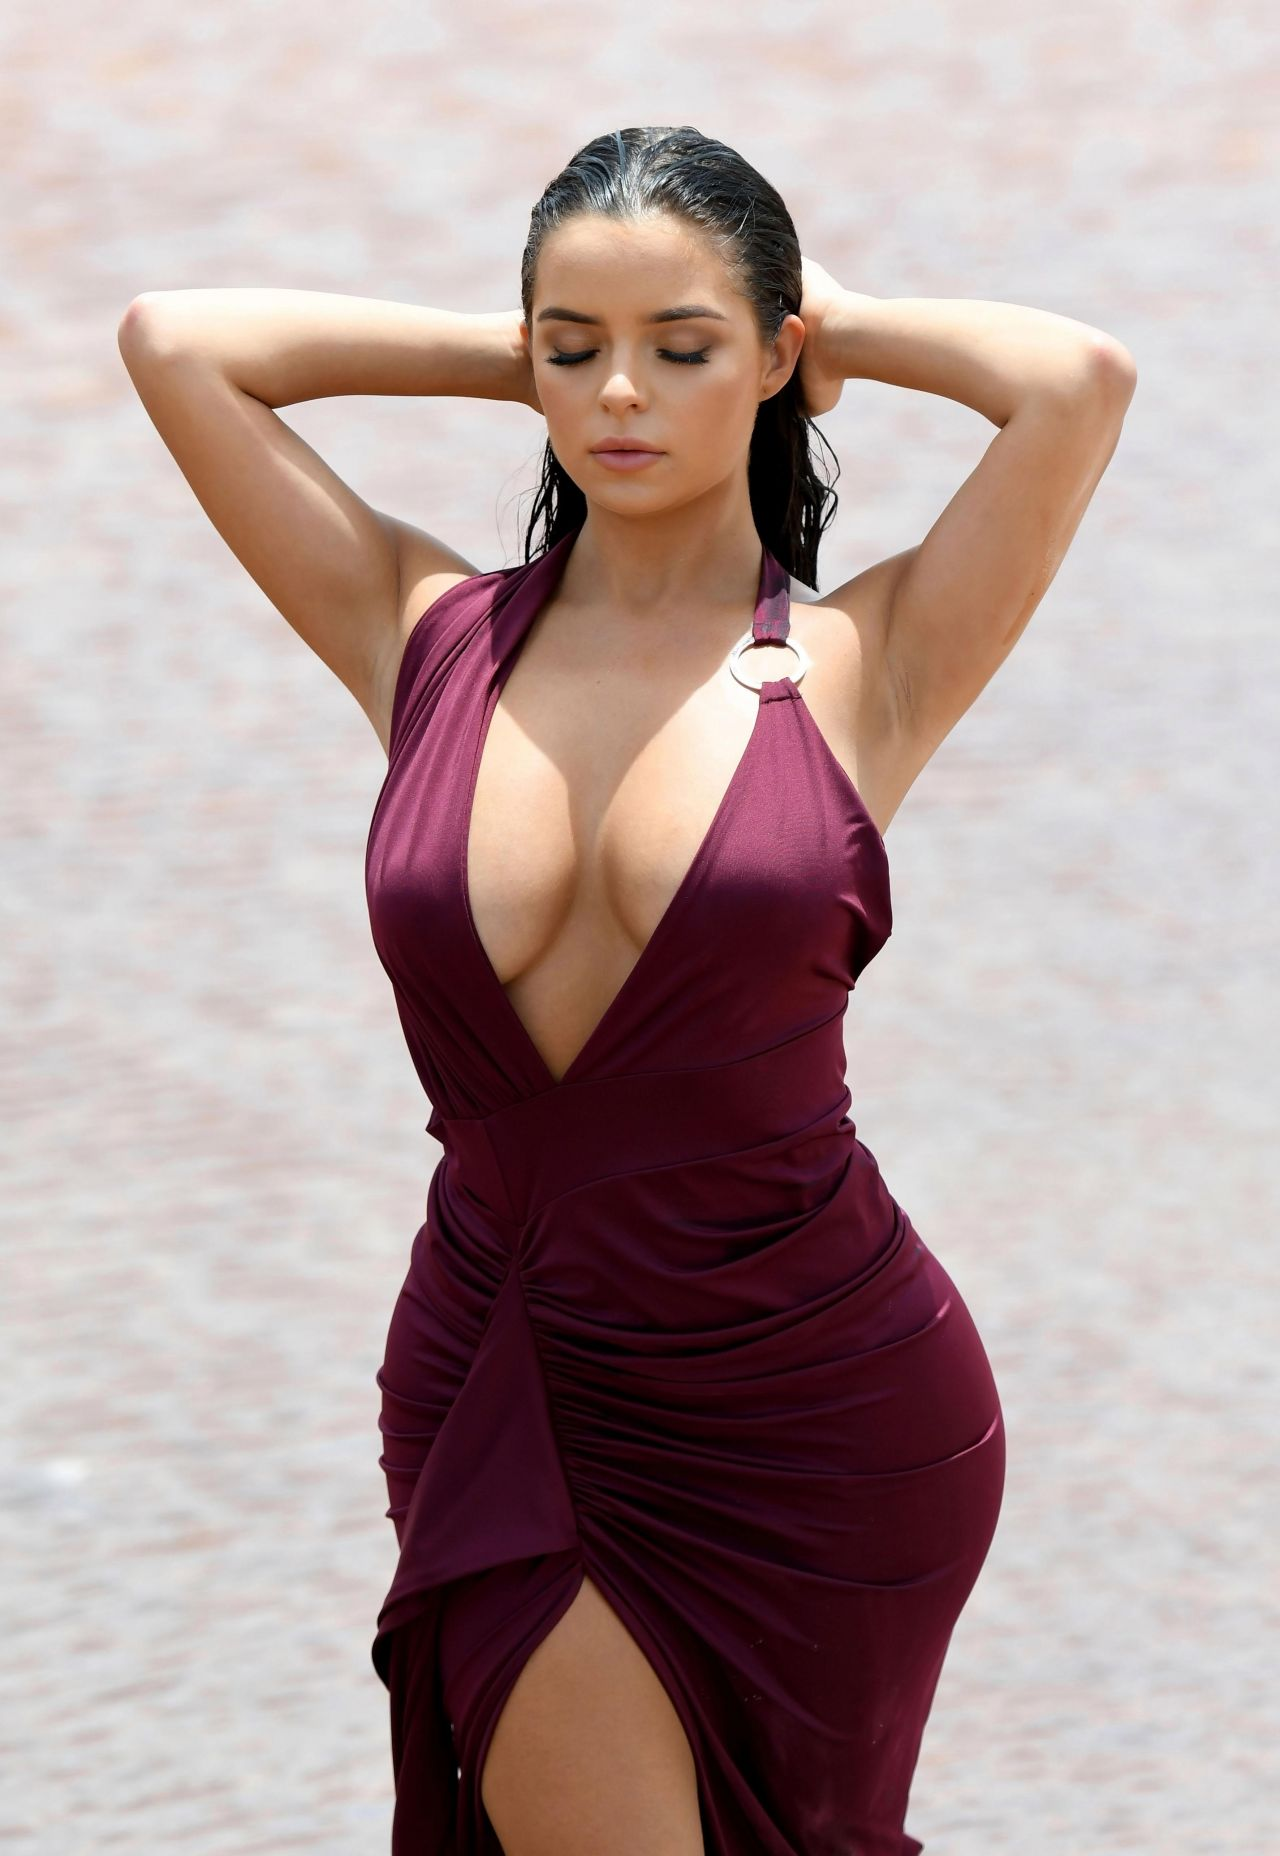 Demi Rose Deep Revealing Hot Dress - Demi Rose Deep Revealing Hot Dress